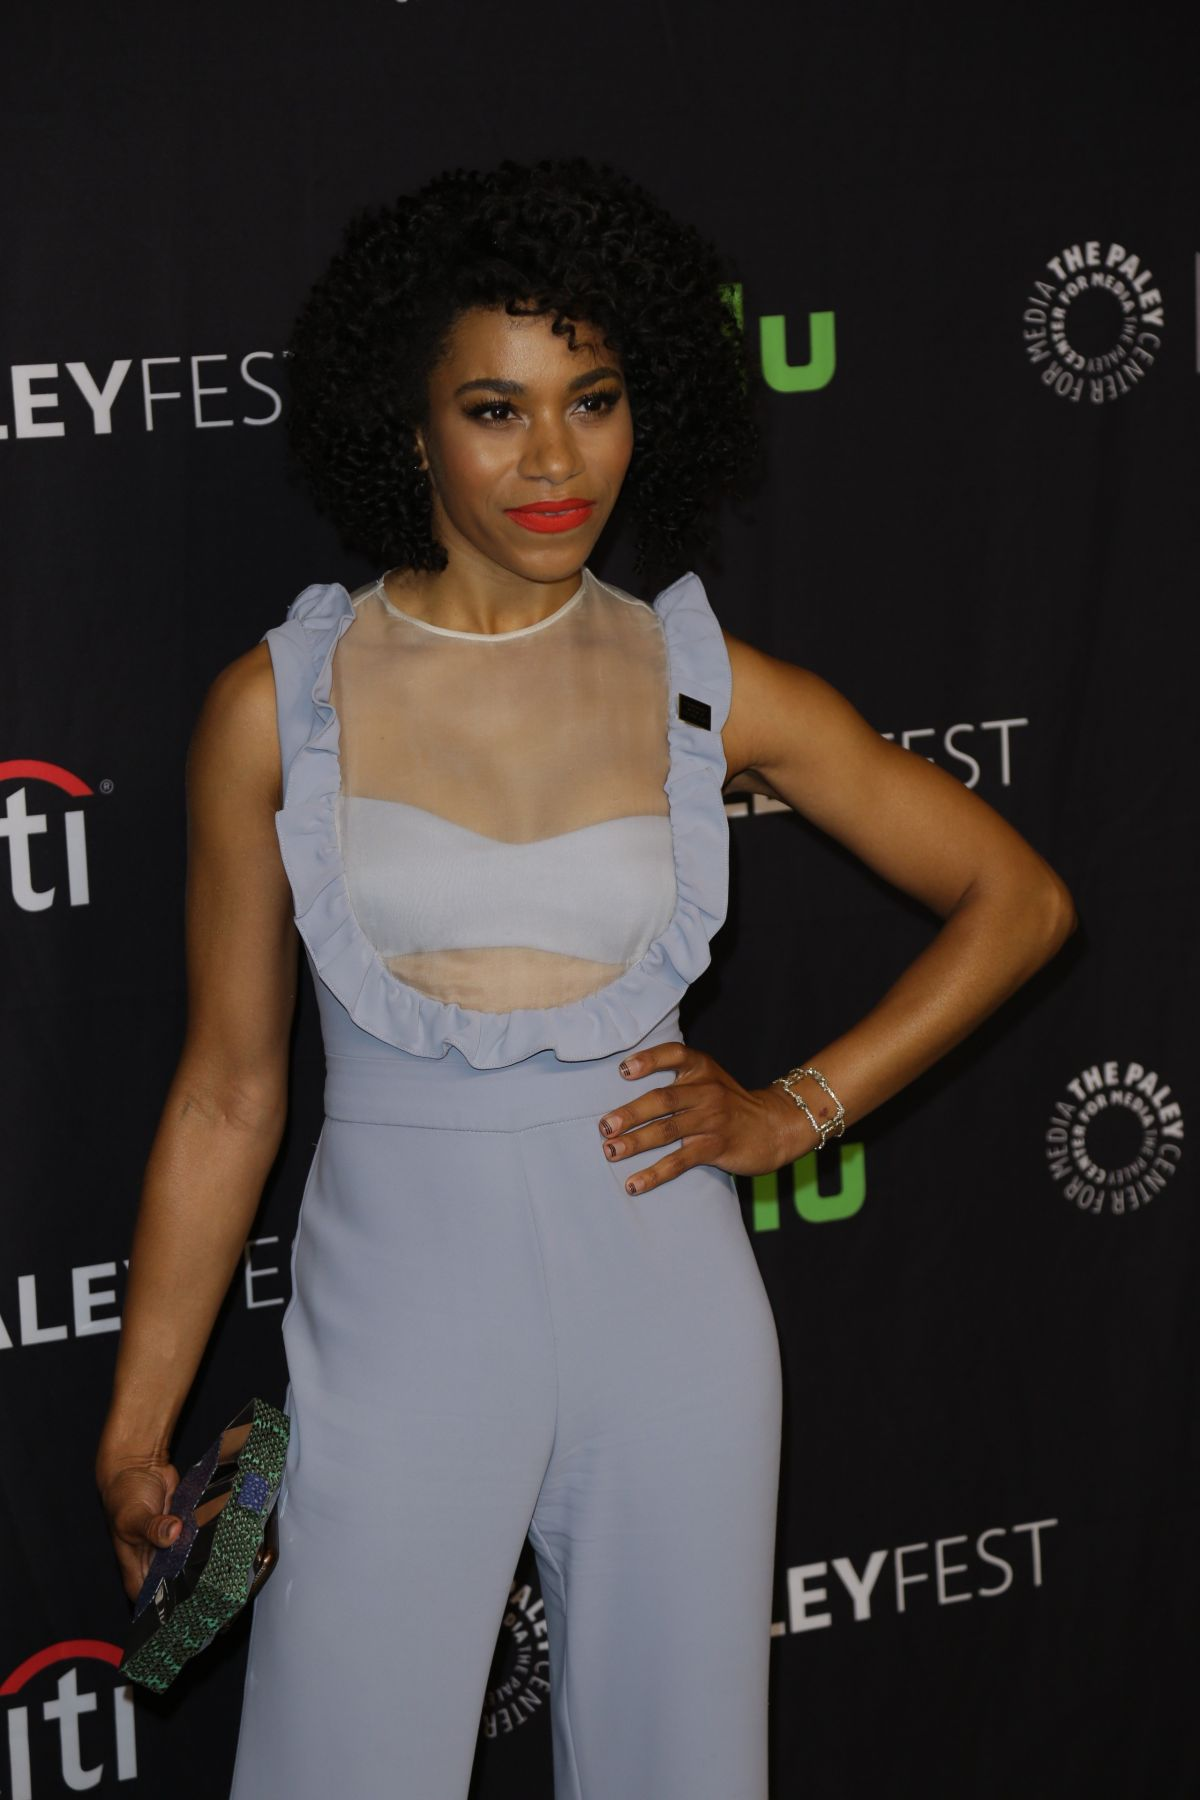 KELLY MCCREARY at 34th Annual PaleyFest in Los Angeles 03/19/2017